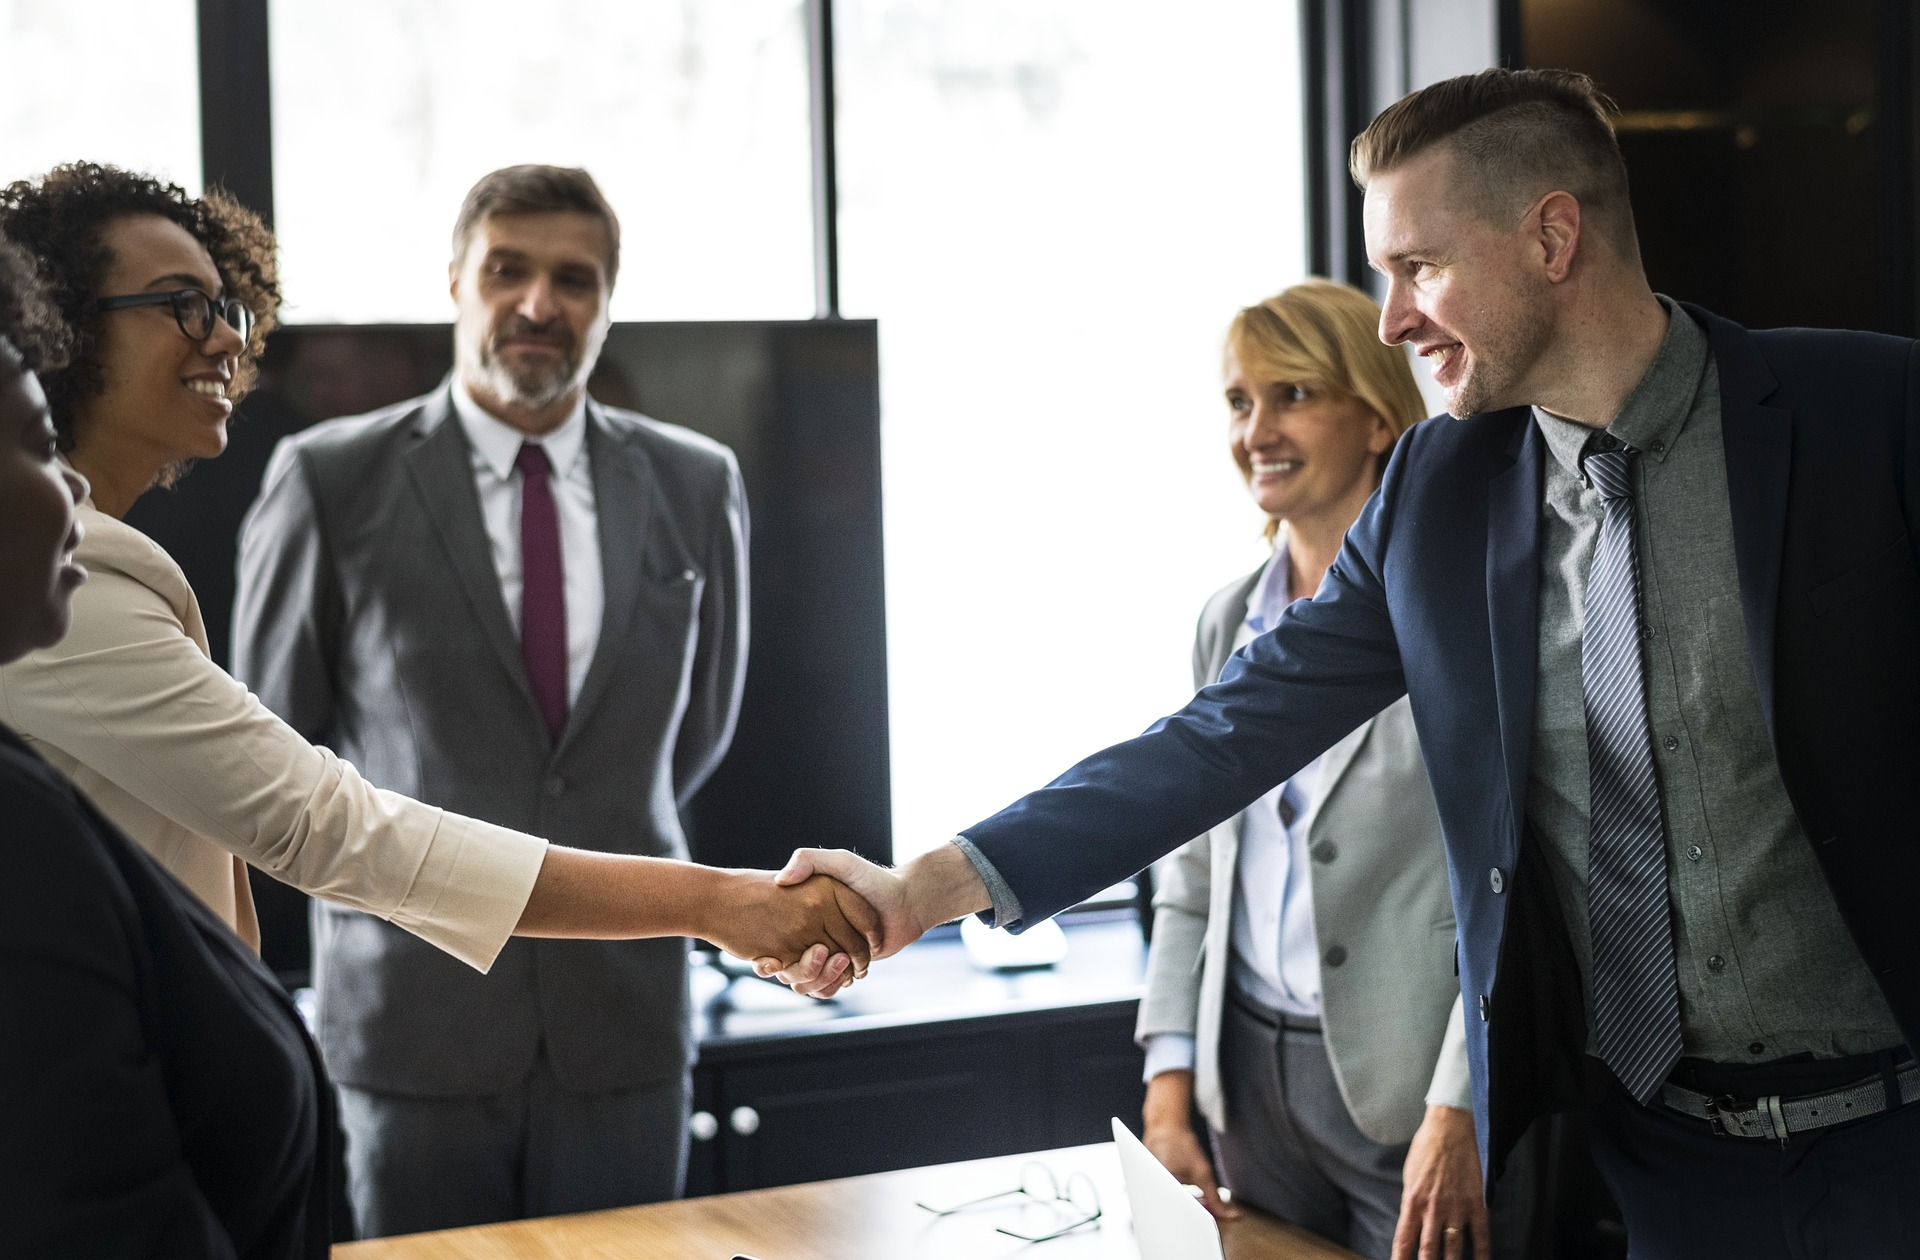 5 Reasons to Care About Employee Engagement